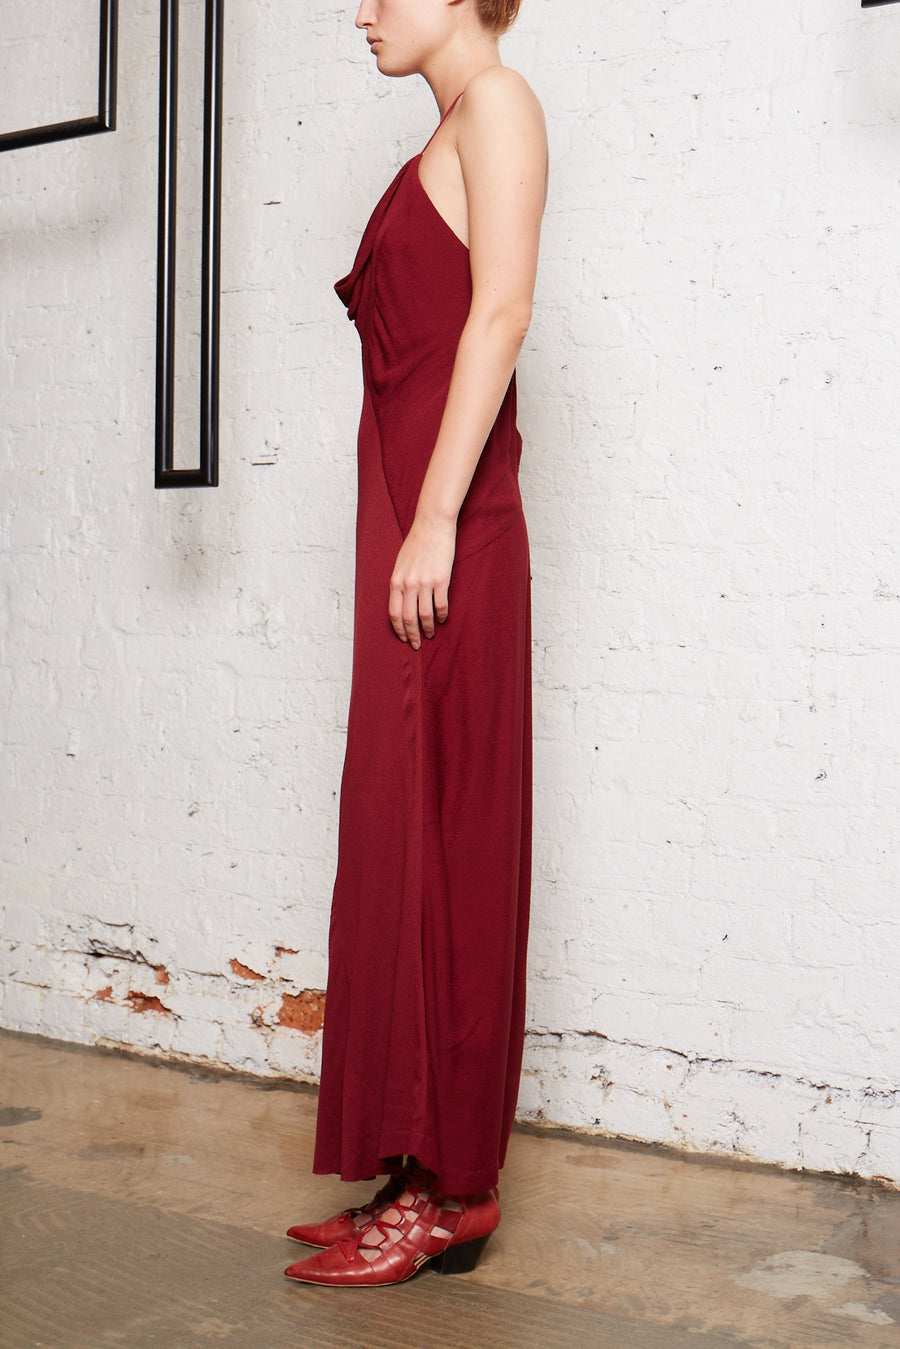 Reproduce Bias Slip Dress - Oxblood